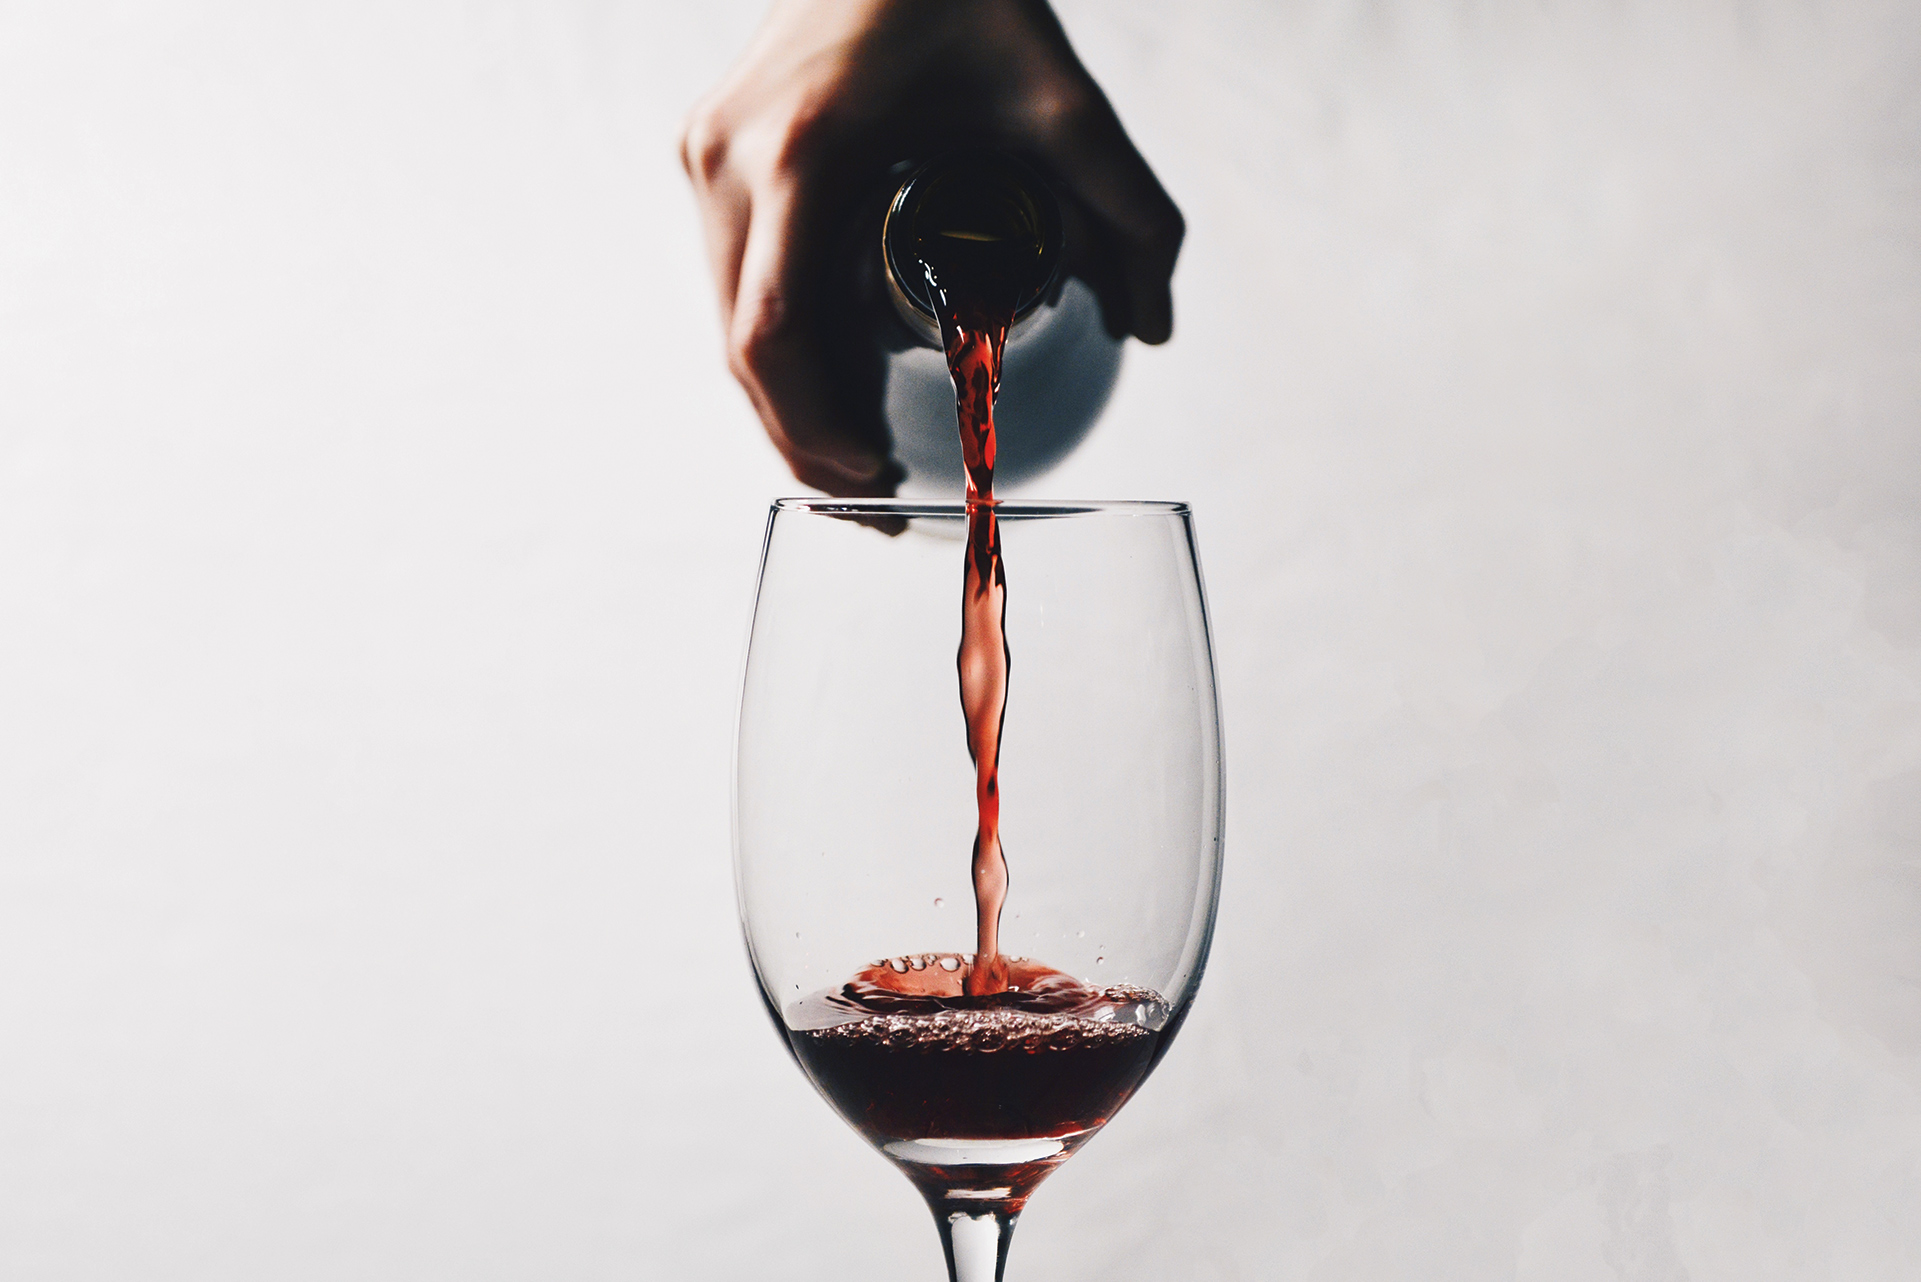 Drinking Only One Type Of Wine Is Bad For Your Palate photo